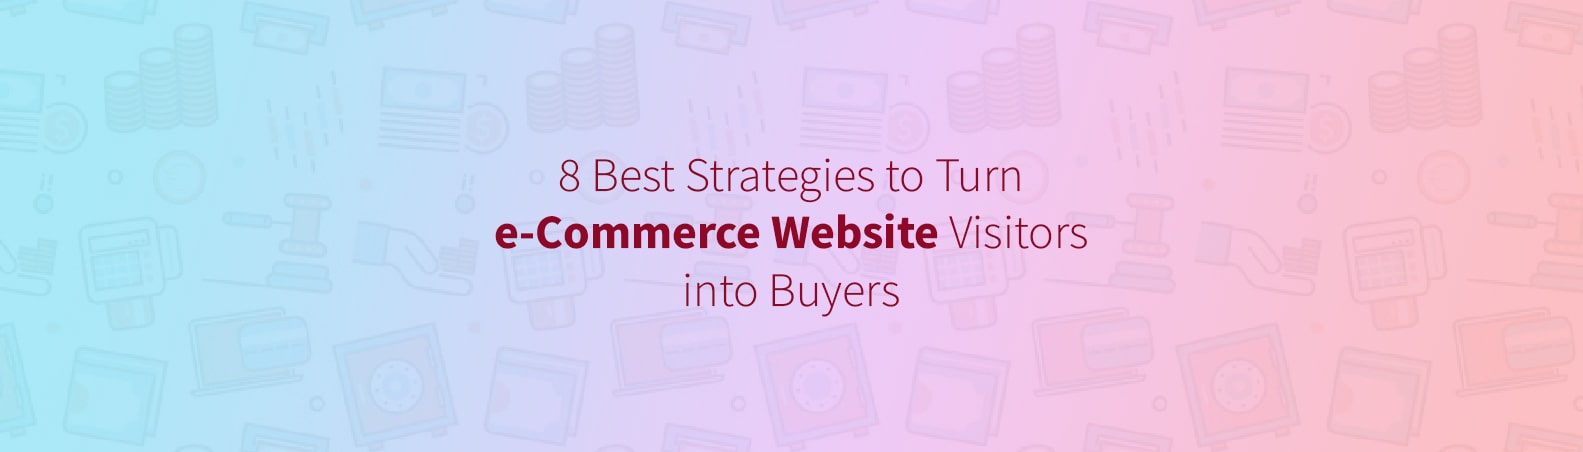 8 Best Strategies to Turn eCommerce Website Visitors into Buyers